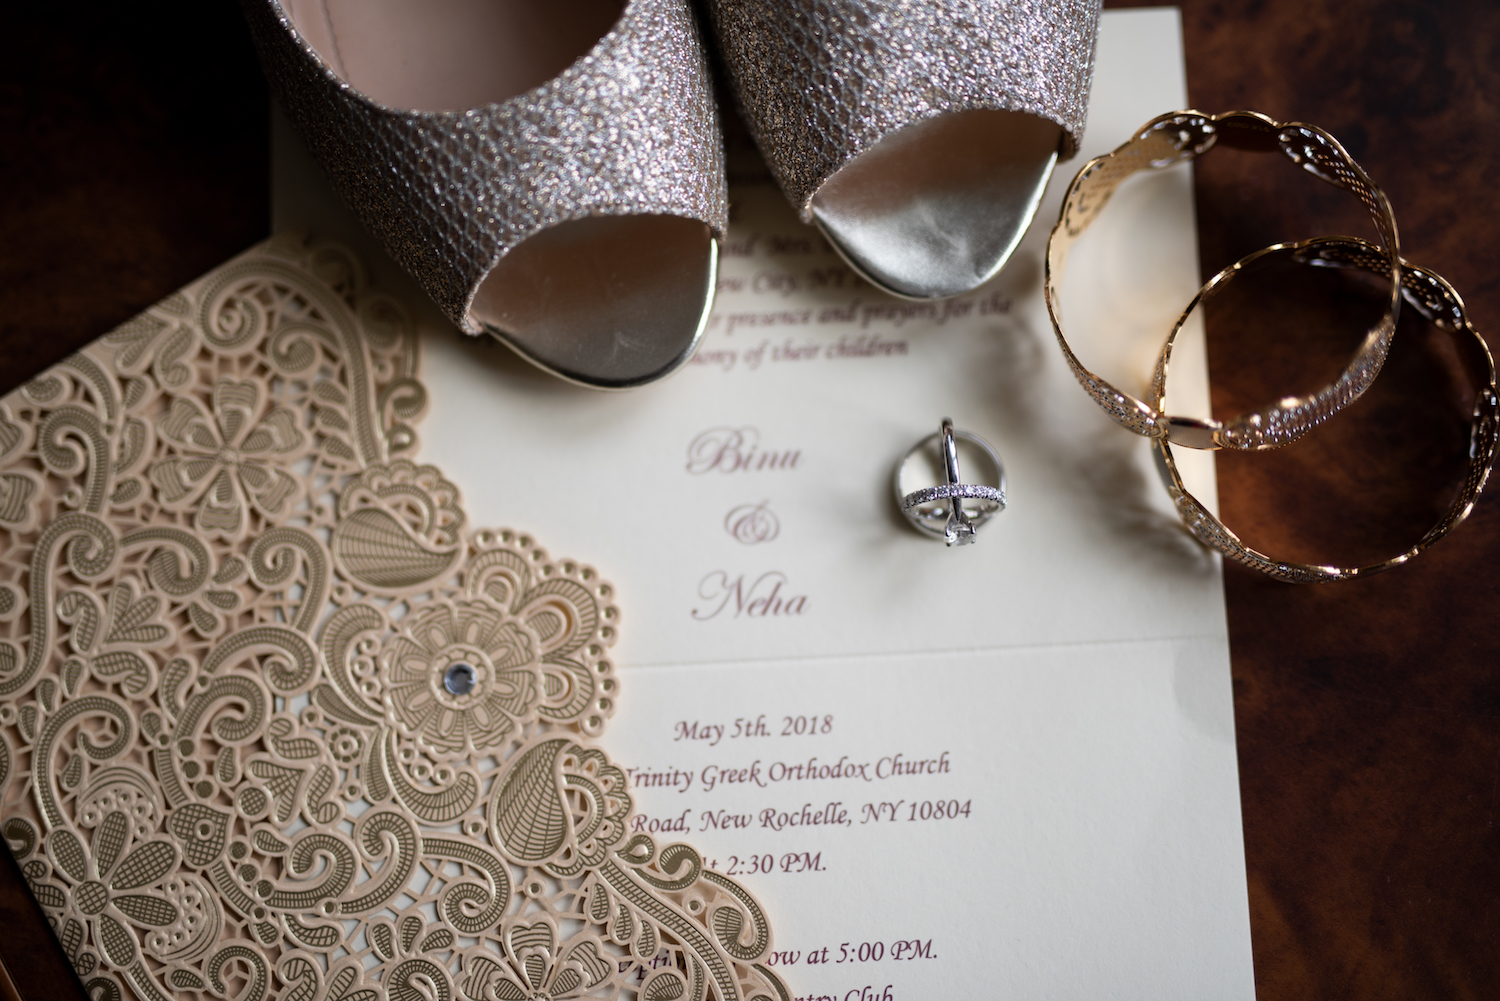 ny-wedding-photographers-neha&binu-invitation-shoes-jewelry-bride-prep